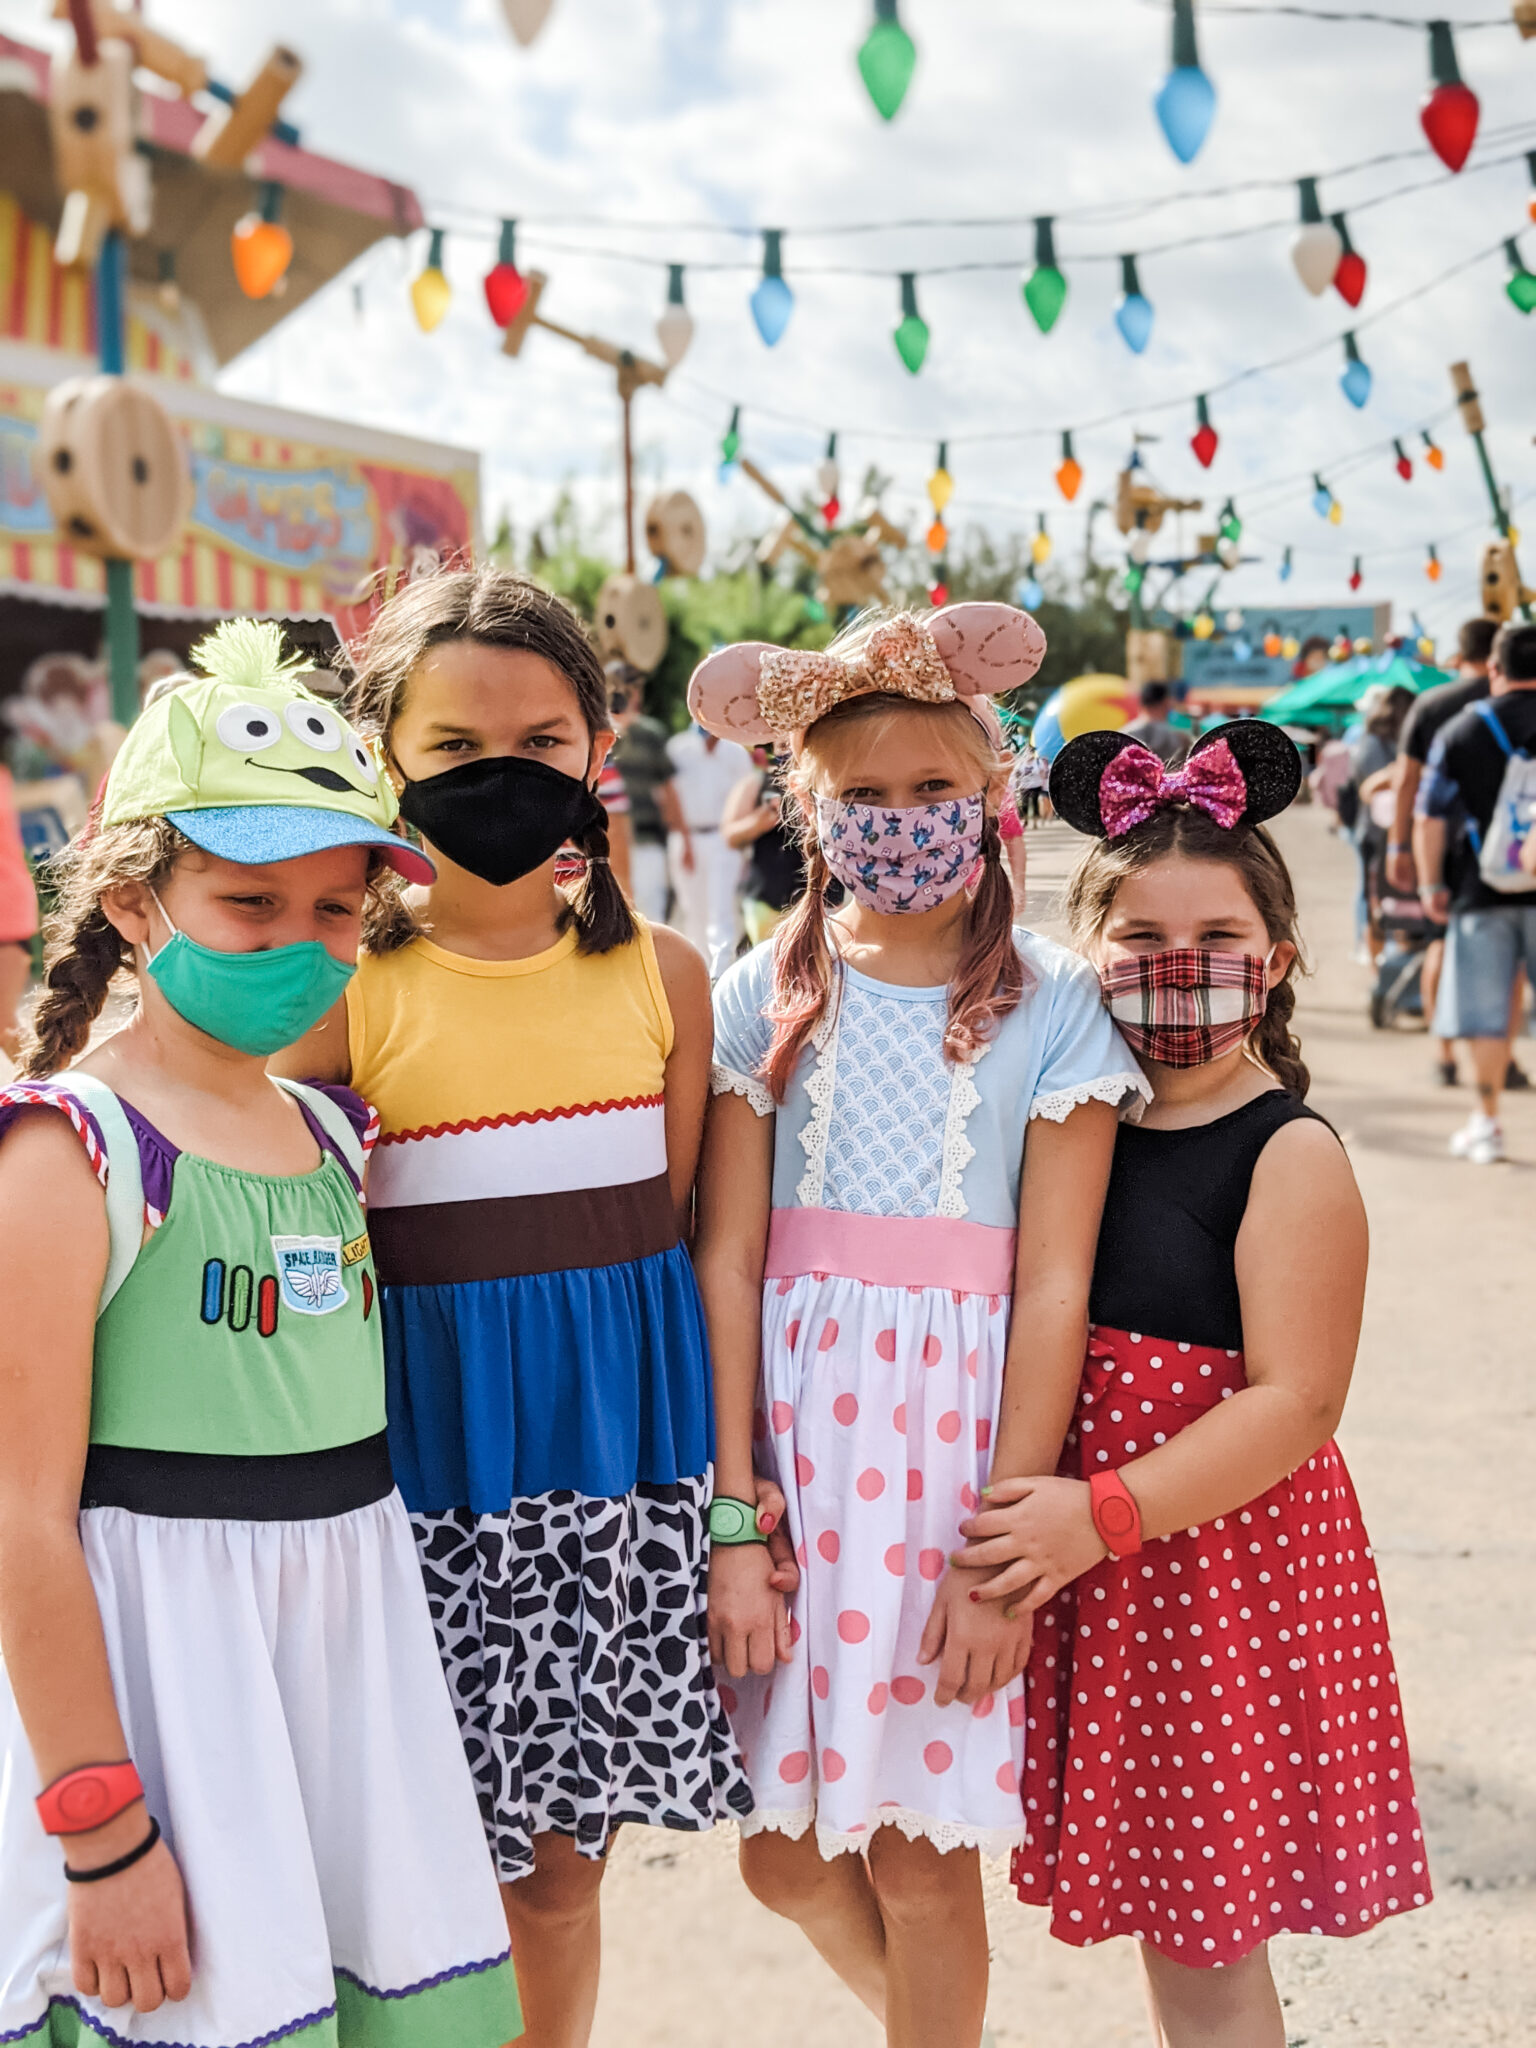 Should You Visit Disney World During the Pandemic? All Things with Purpose Sarah Lemp 1